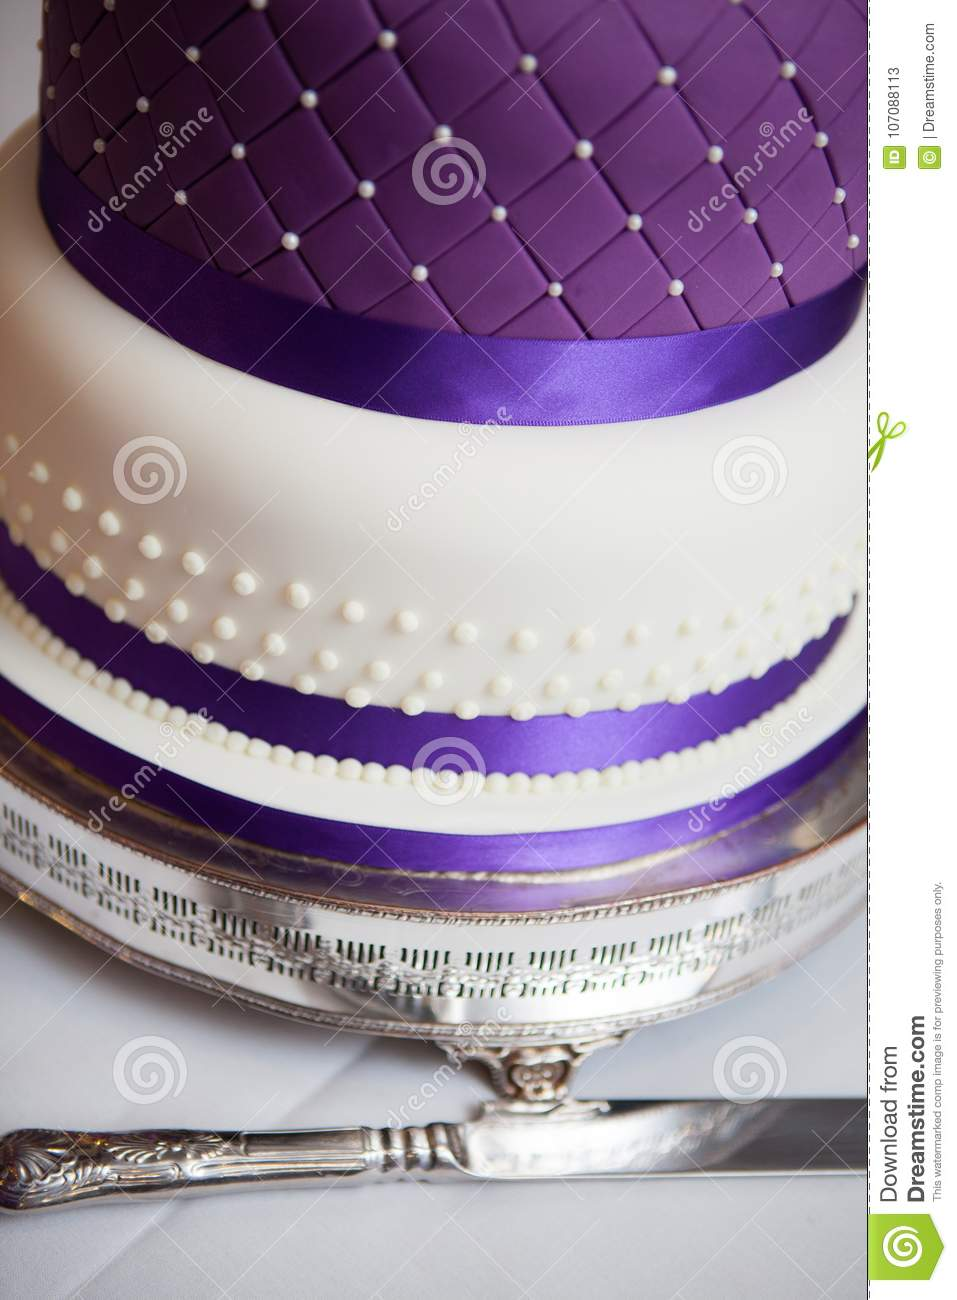 A Close Of A Wedding Cake With Purple Ribbon Stock Image - Image of ...